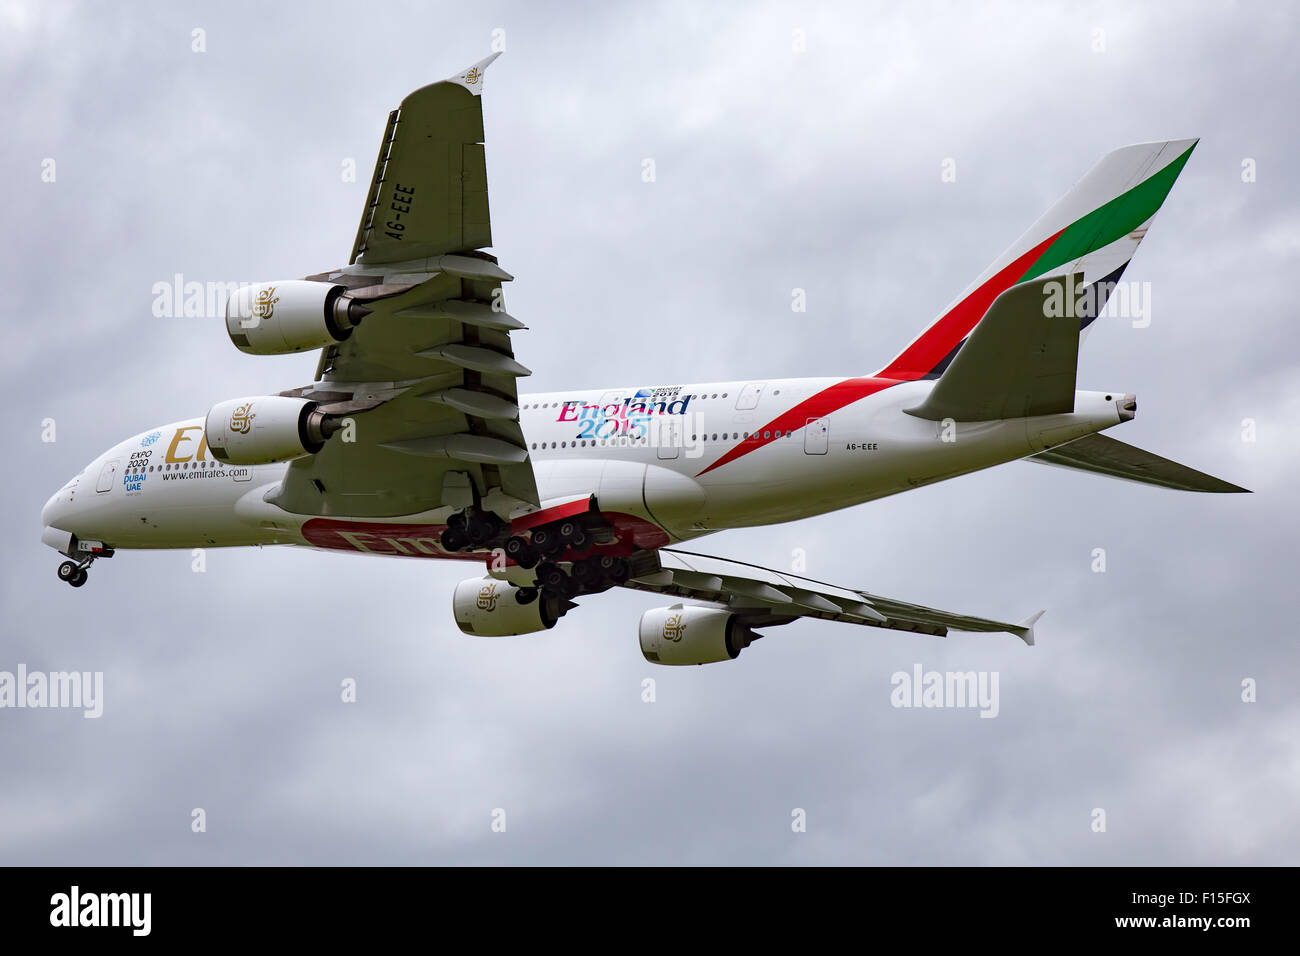 Emirates Airbus A380-800 climbs away from runway 05L at Manchester airport. - Stock Image